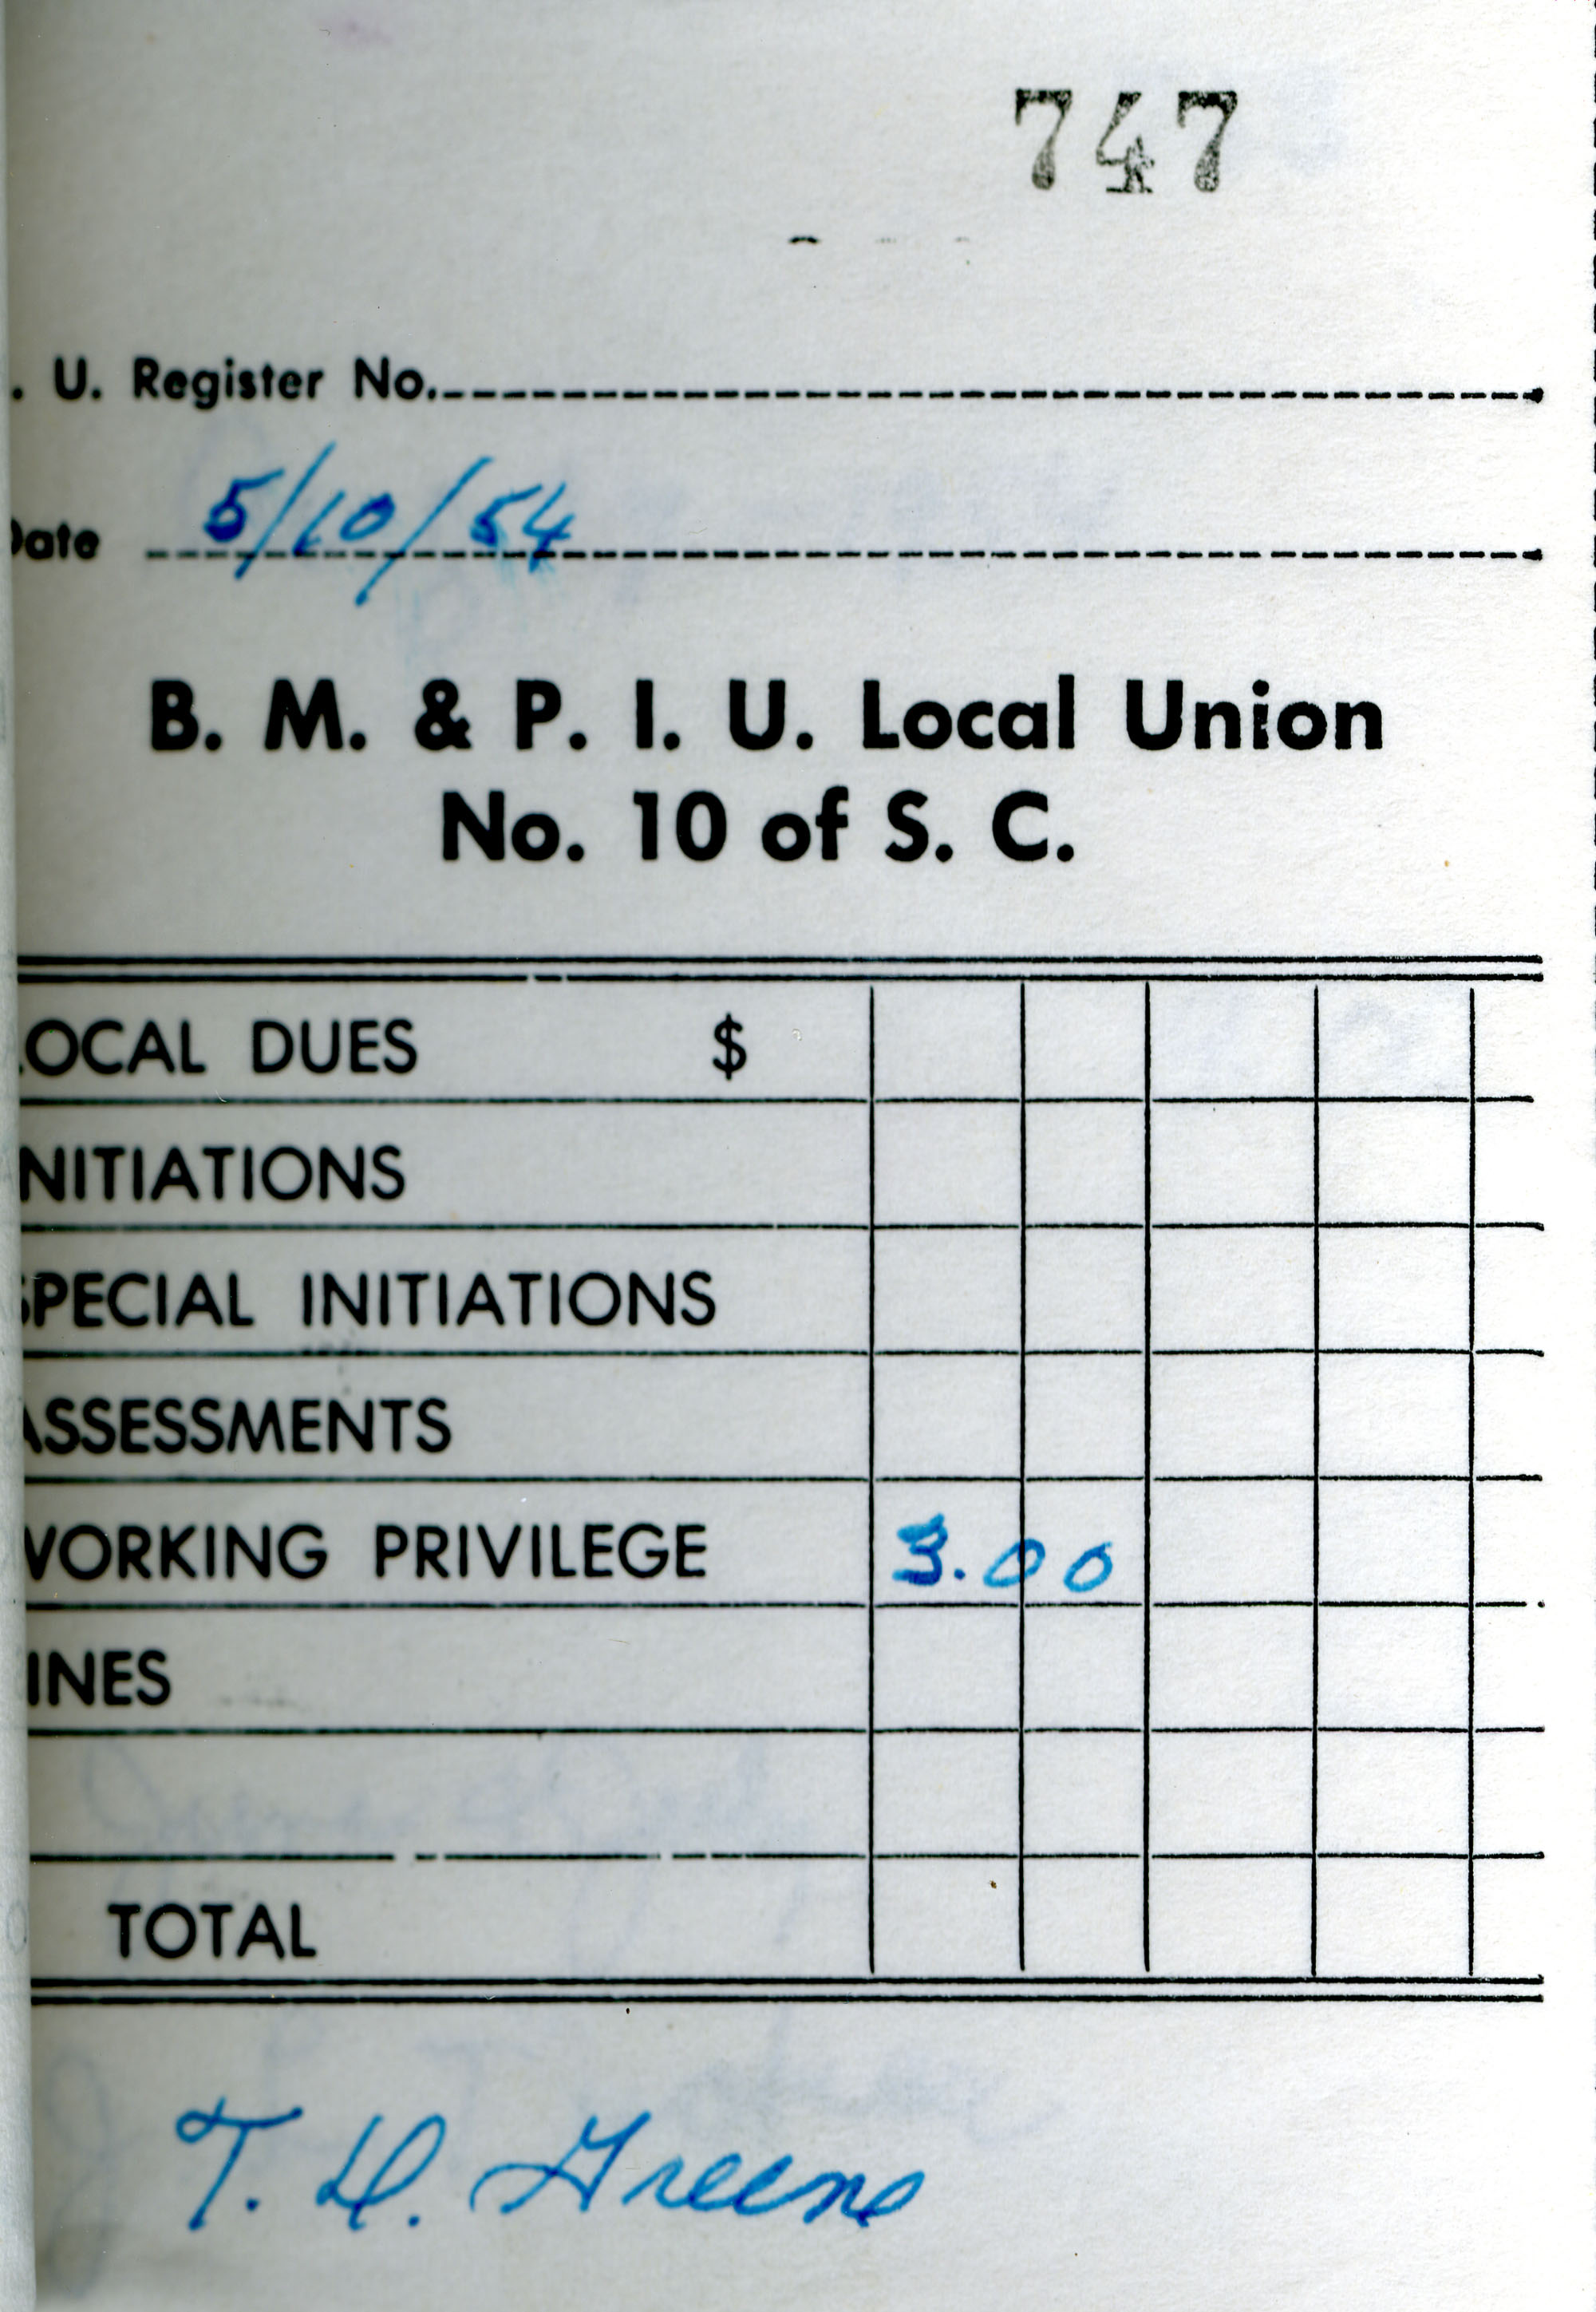 Receipt Book 5, Page 47